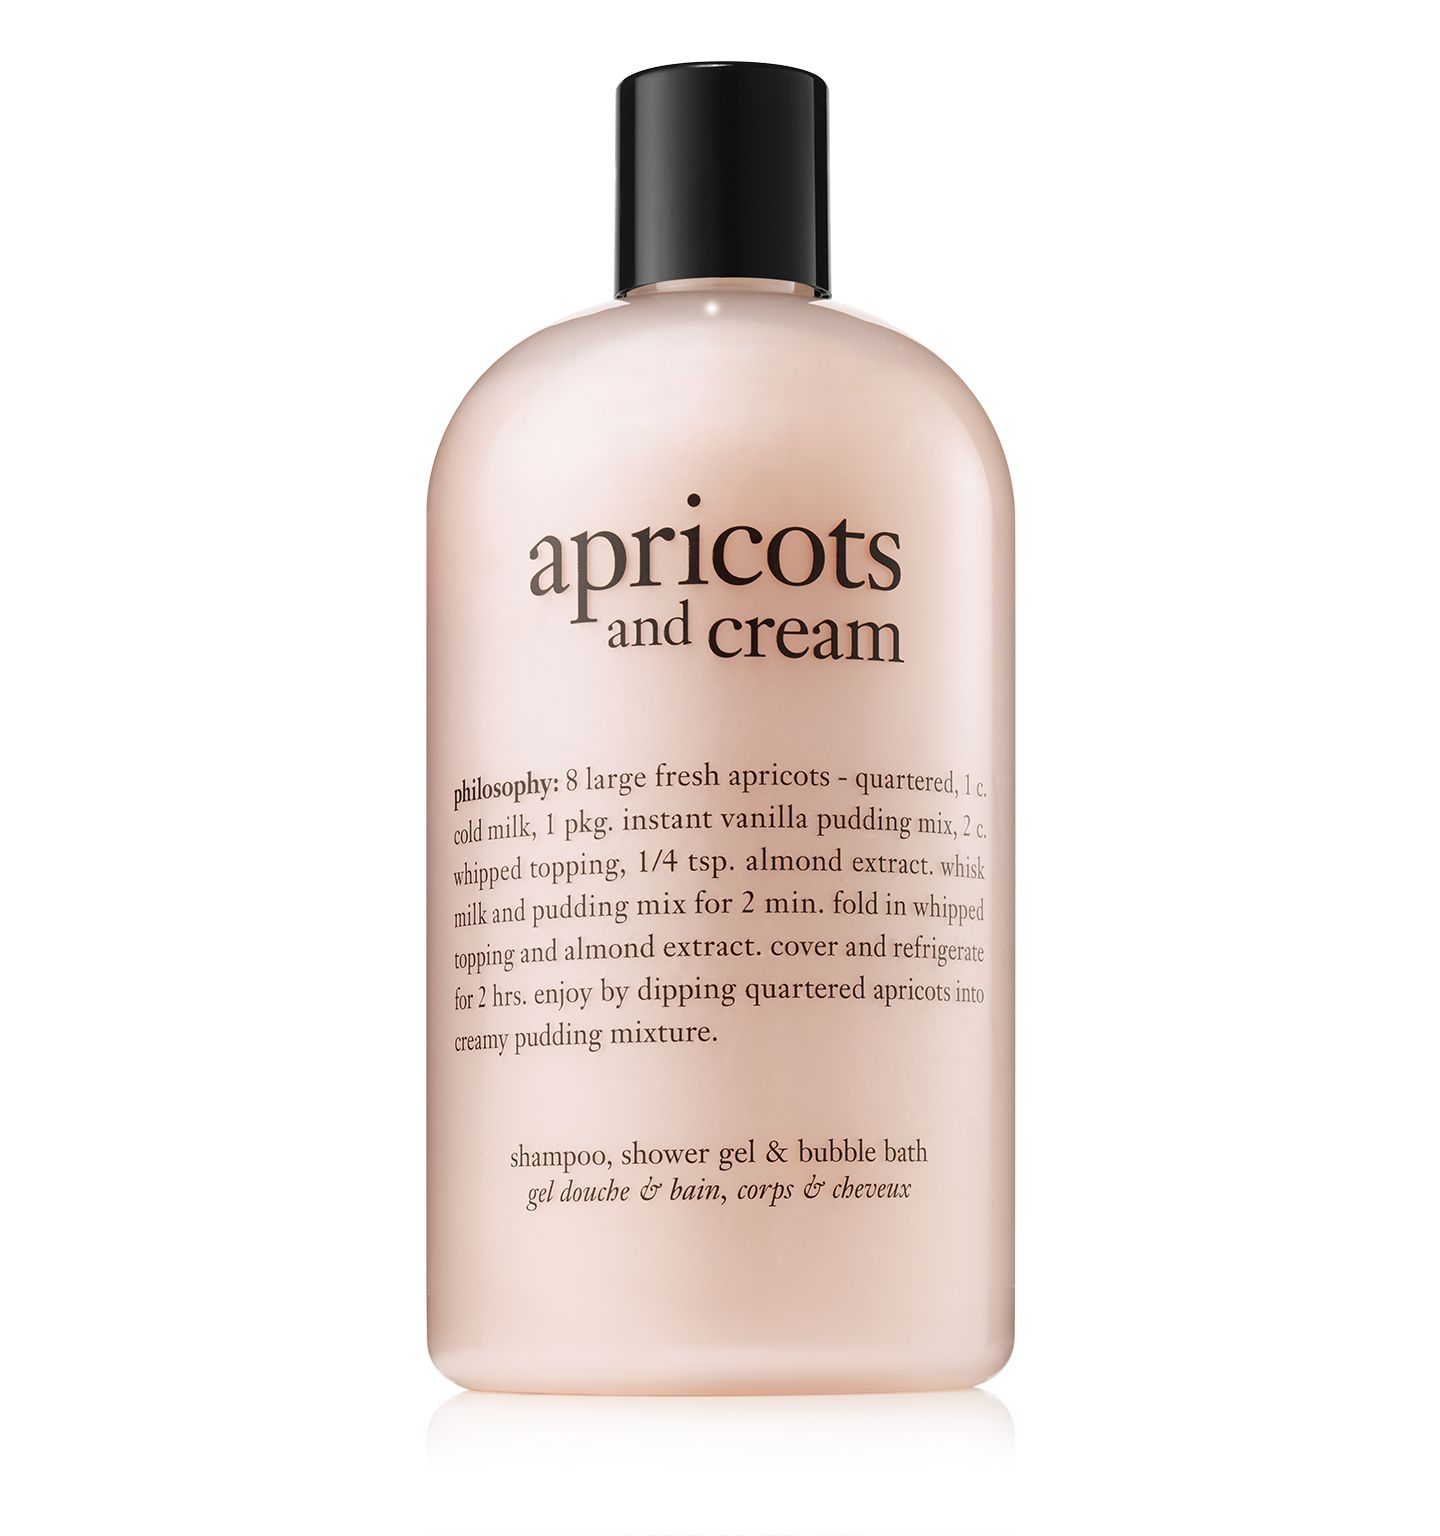 Apricots And Cream Philosophy Cream Shampoo Sweet Lover